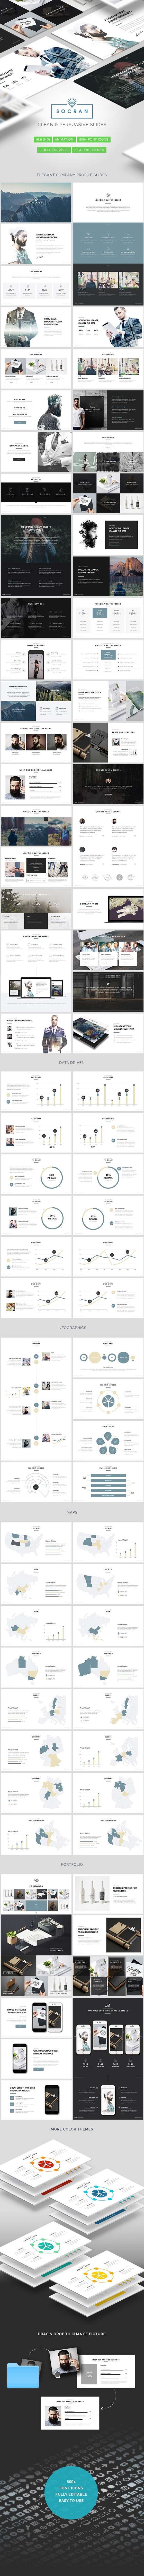 Socran - Keynote Template on Behance